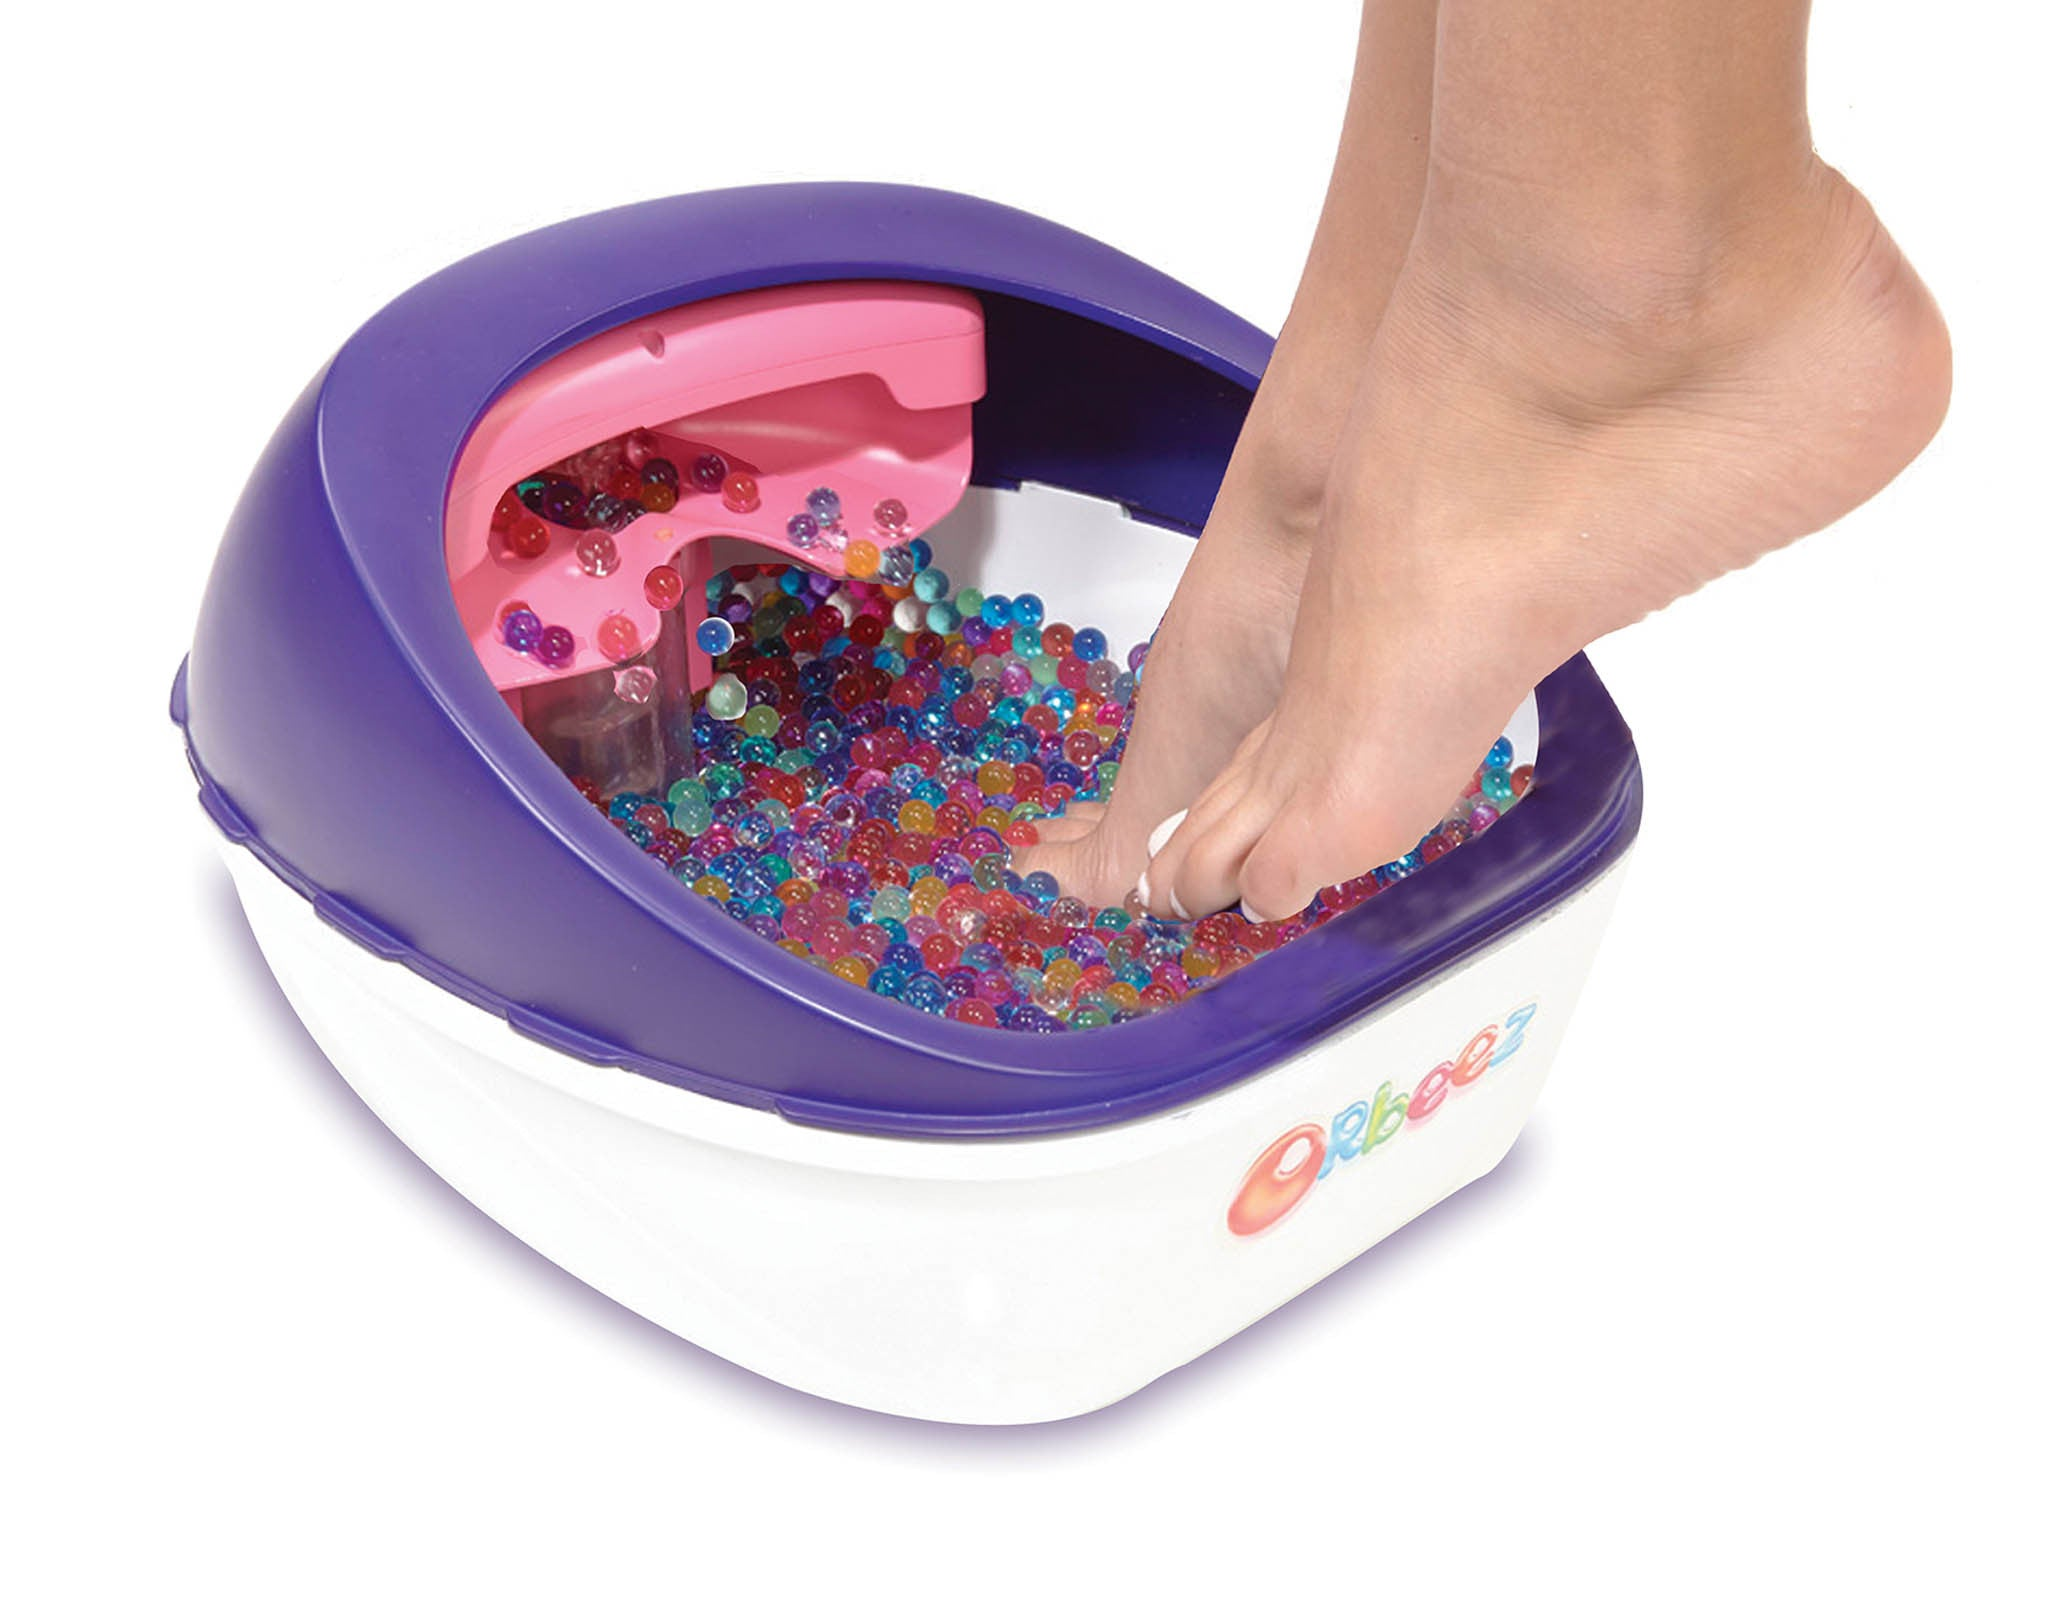 Orbeez Ultimate Soothing Foot Spa for Children – Maya Toys